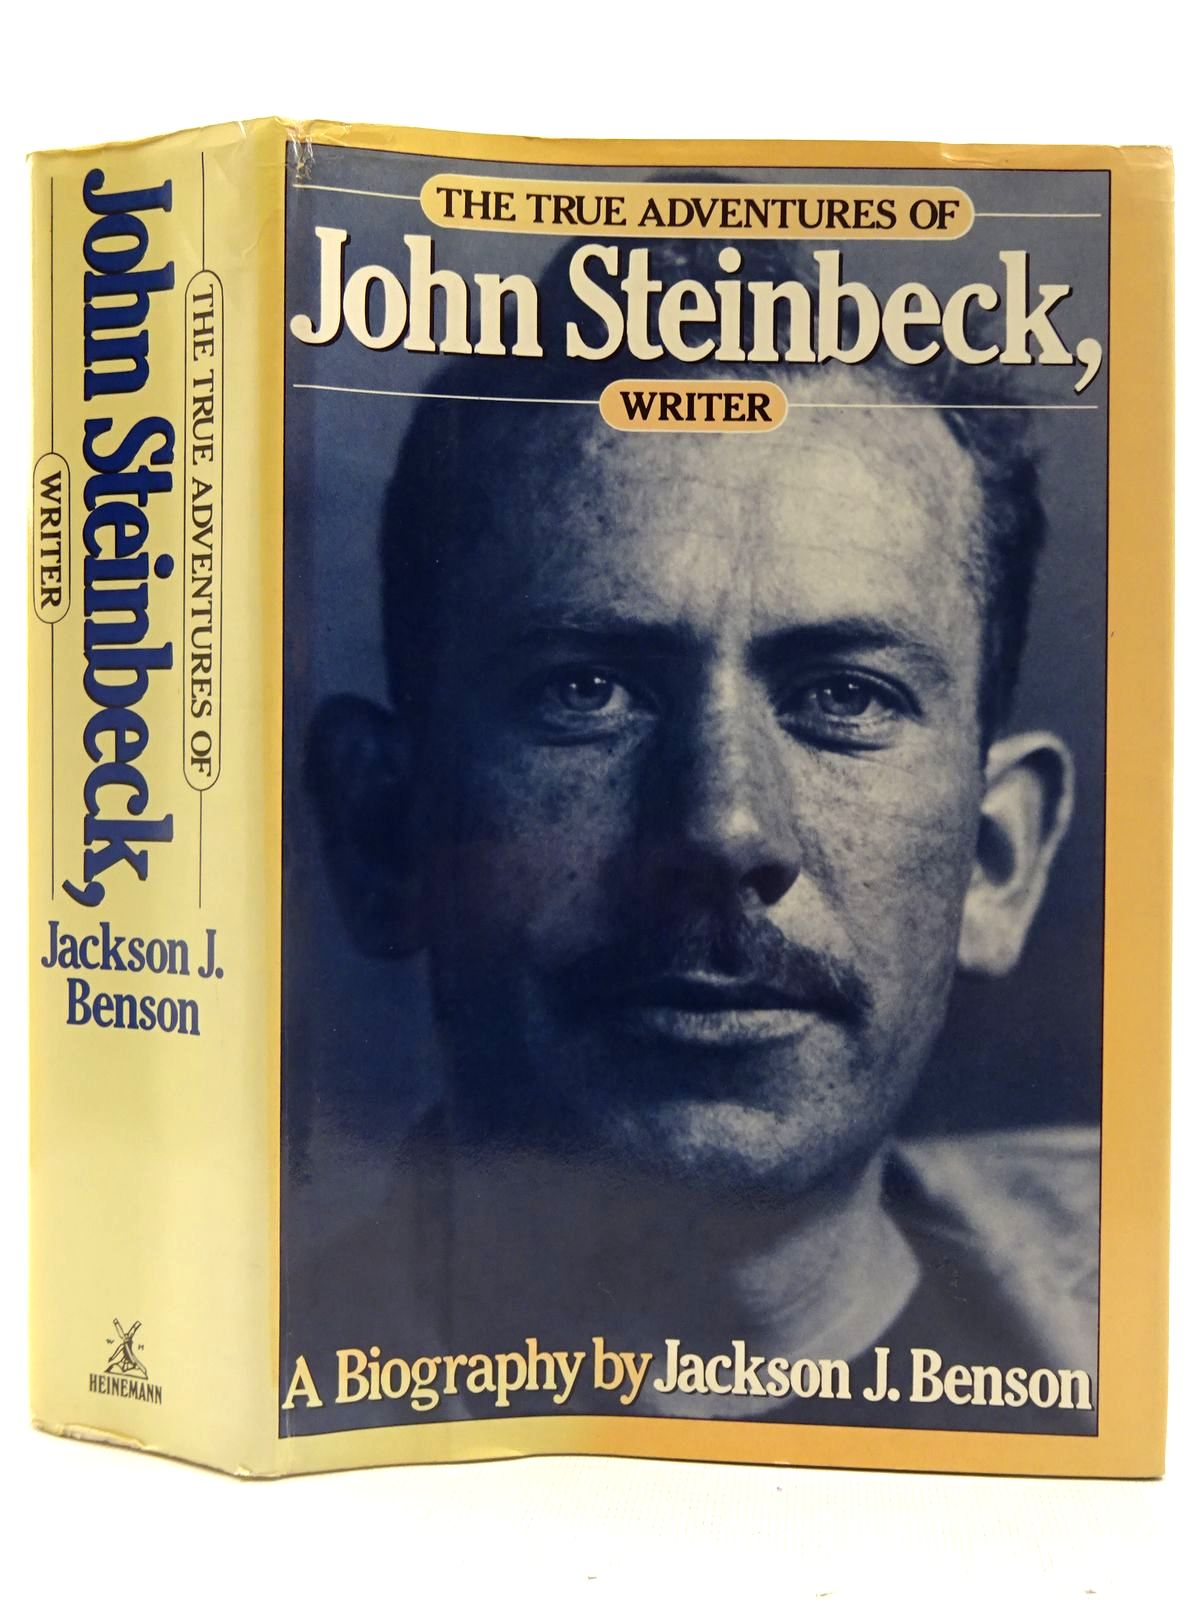 Photo of THE TRUE ADVENTURES OF JOHN STEINBECK, WRITER written by Benson, Jackson J. published by Heinemann (STOCK CODE: 2128282)  for sale by Stella & Rose's Books